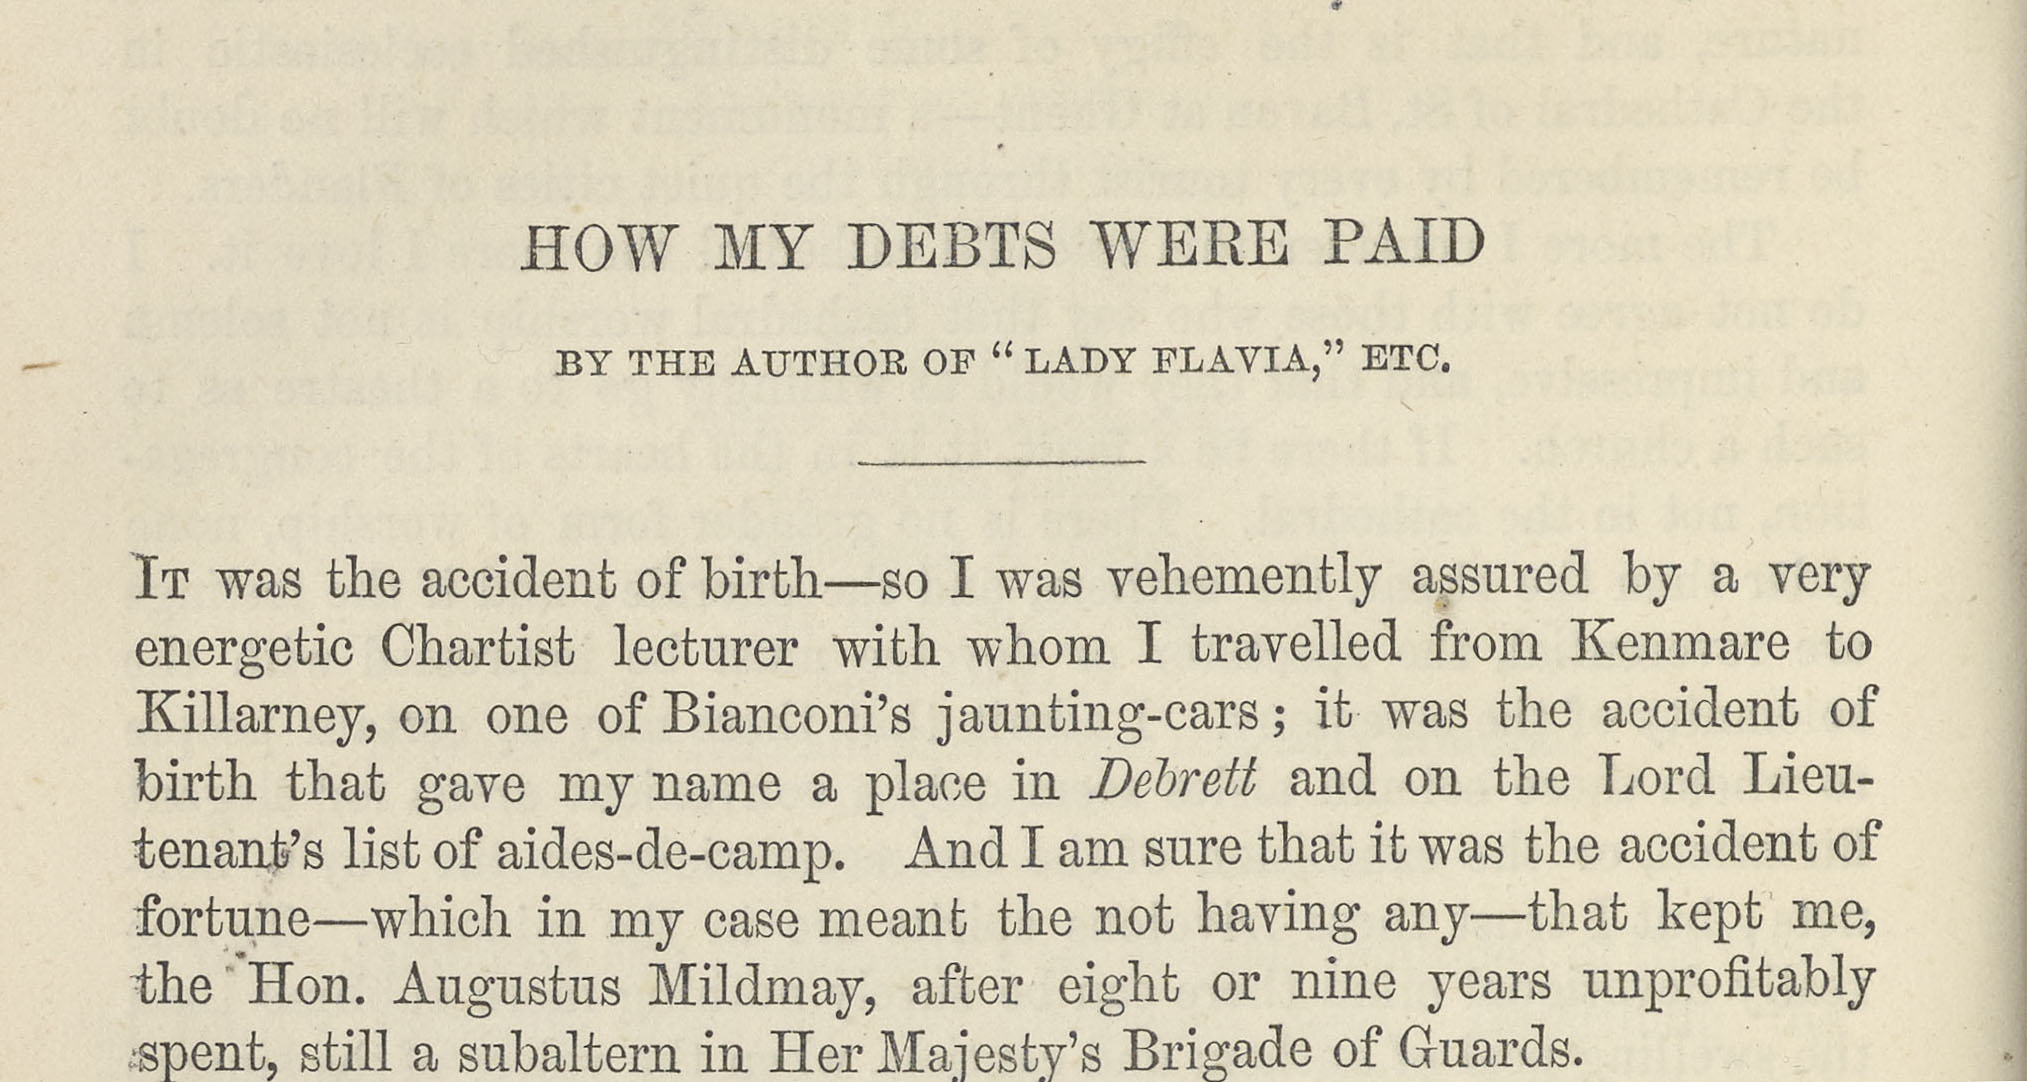 A sample page from How My Debts Were Paid by John Berwick Harwood